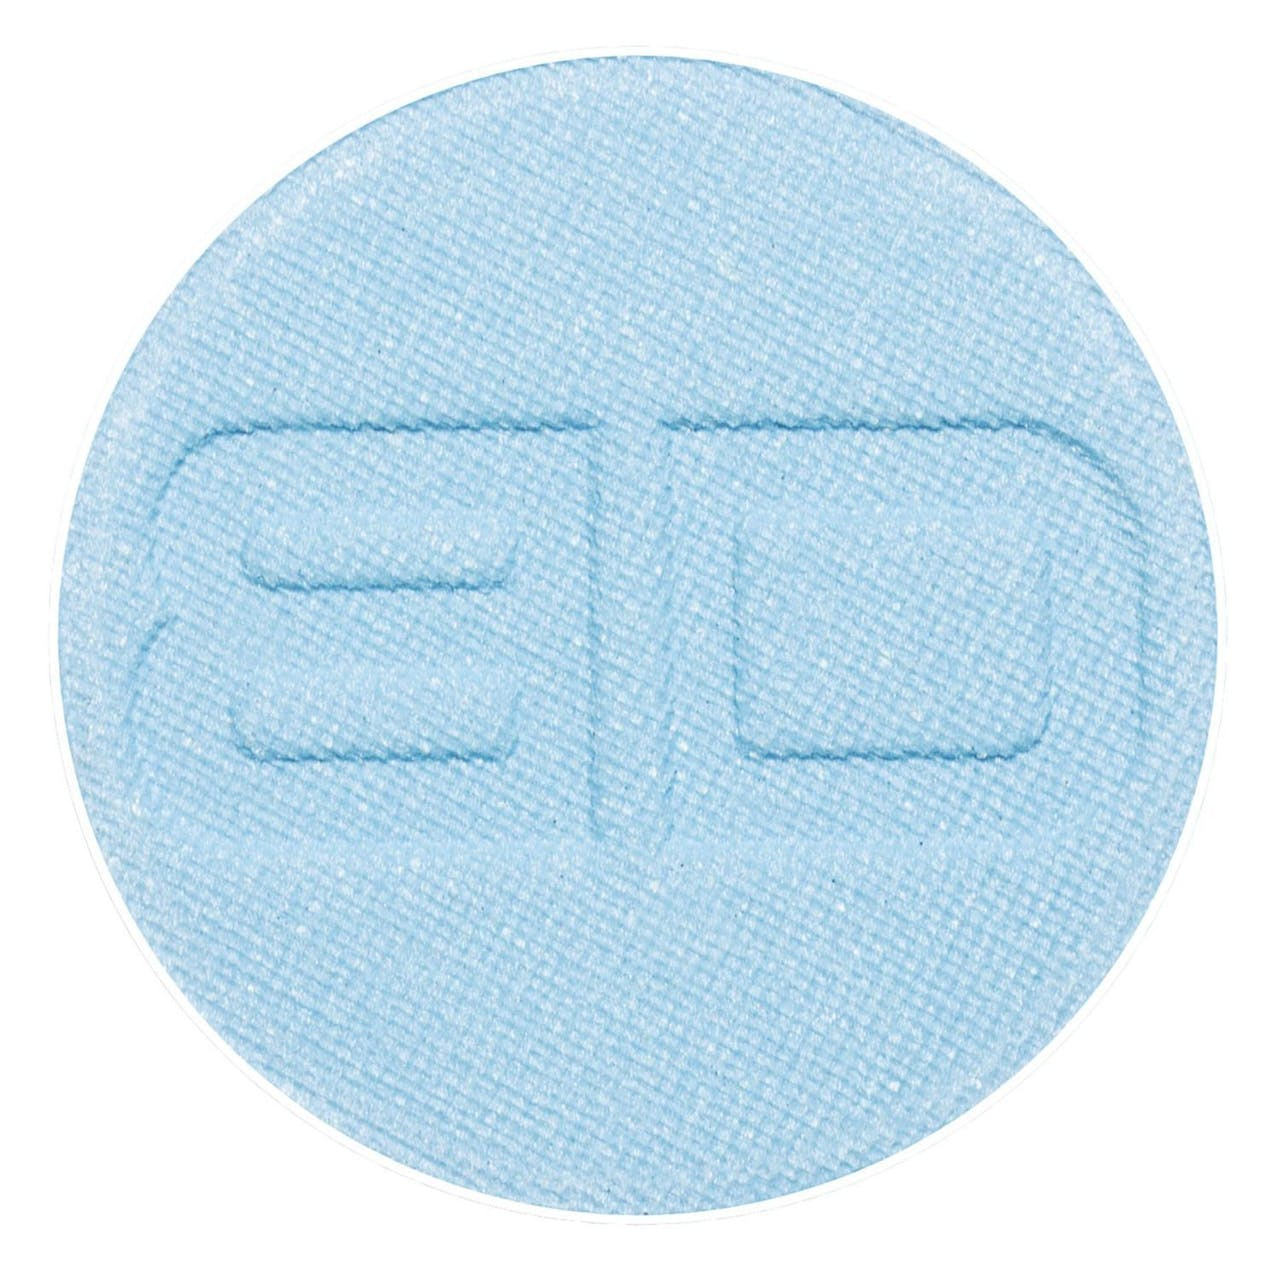 BD Puderpigment Baby Refill 2.5g - 5.40€/1g